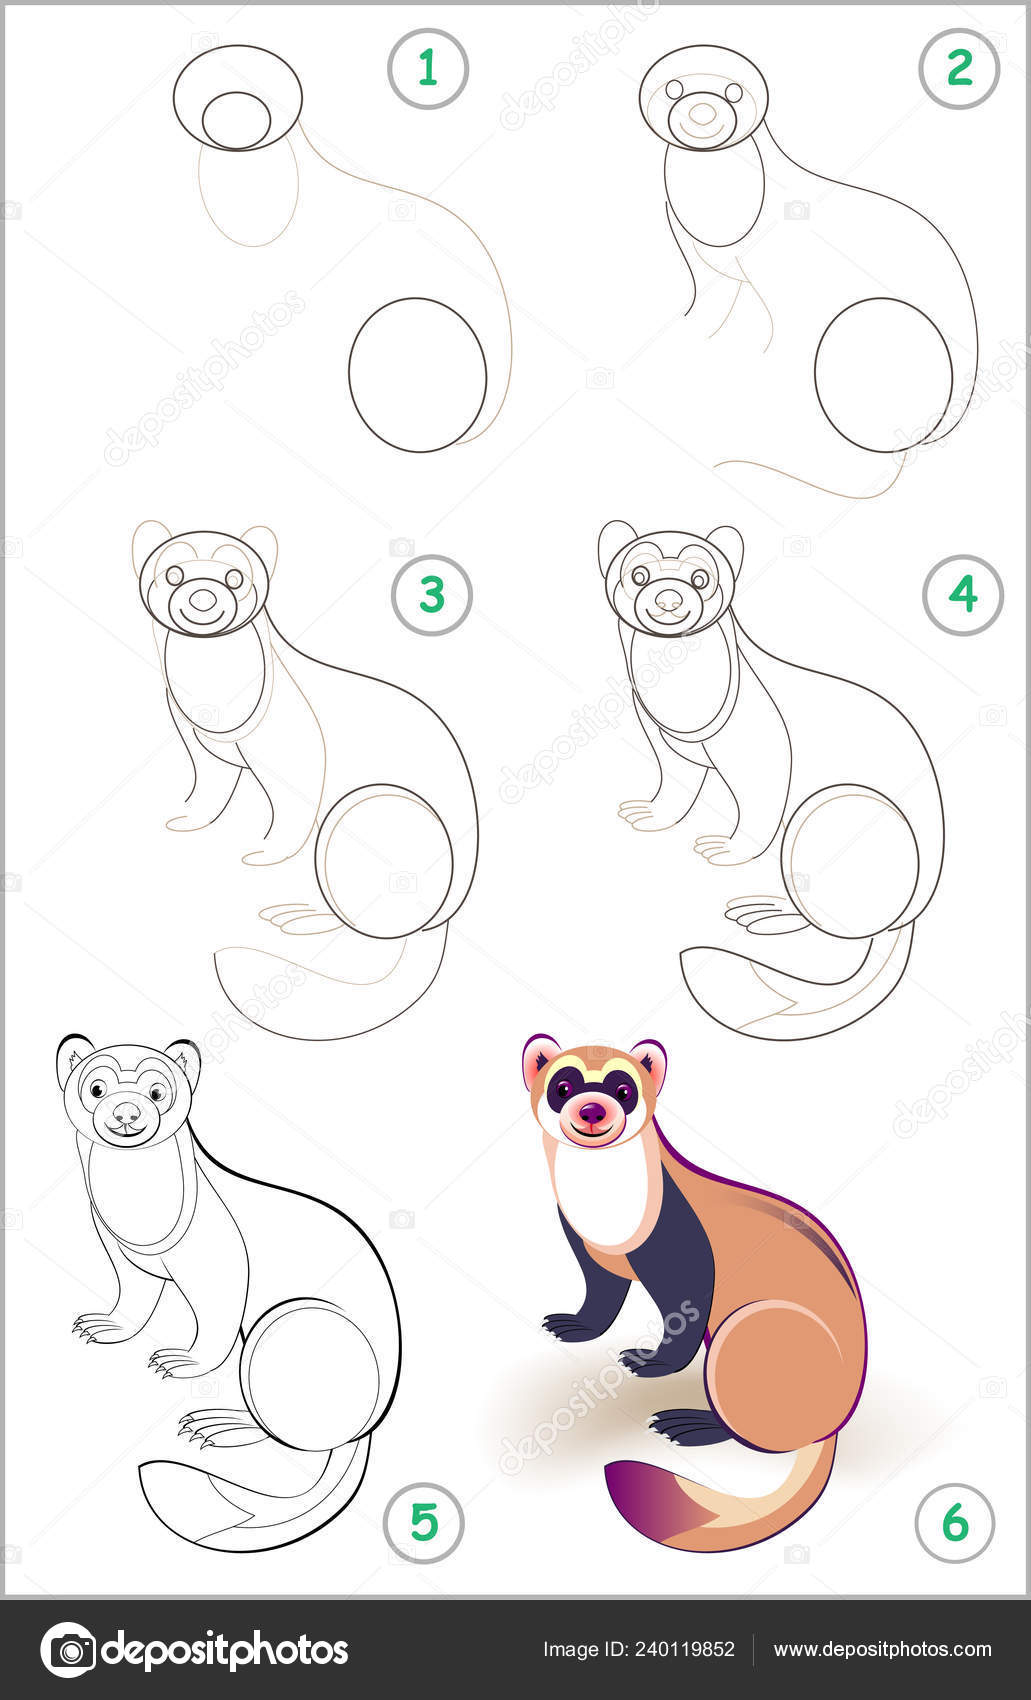 Educational page for kids shows how to learn step by step to draw a cute ferret back to school developing children skills for drawing and coloring